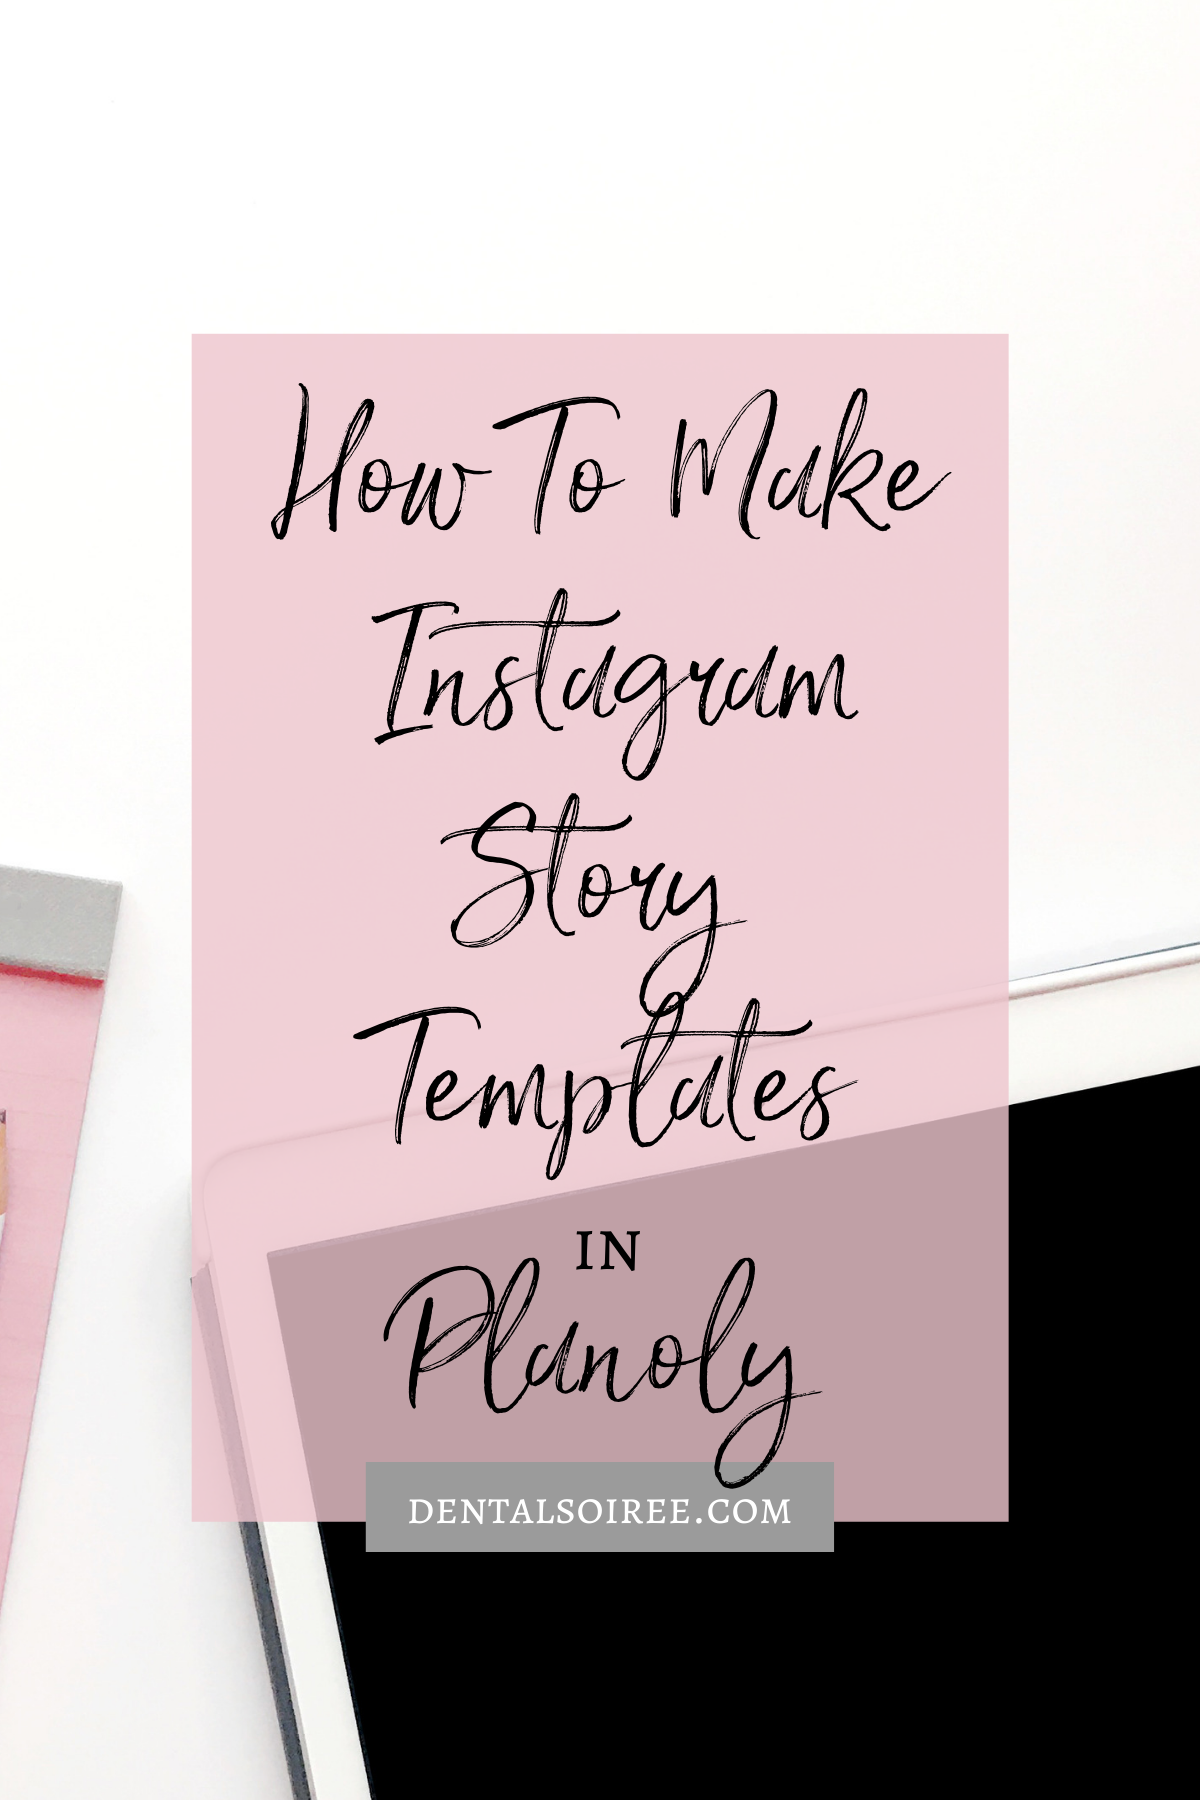 How to Make Instagram Story Templates in Planoly